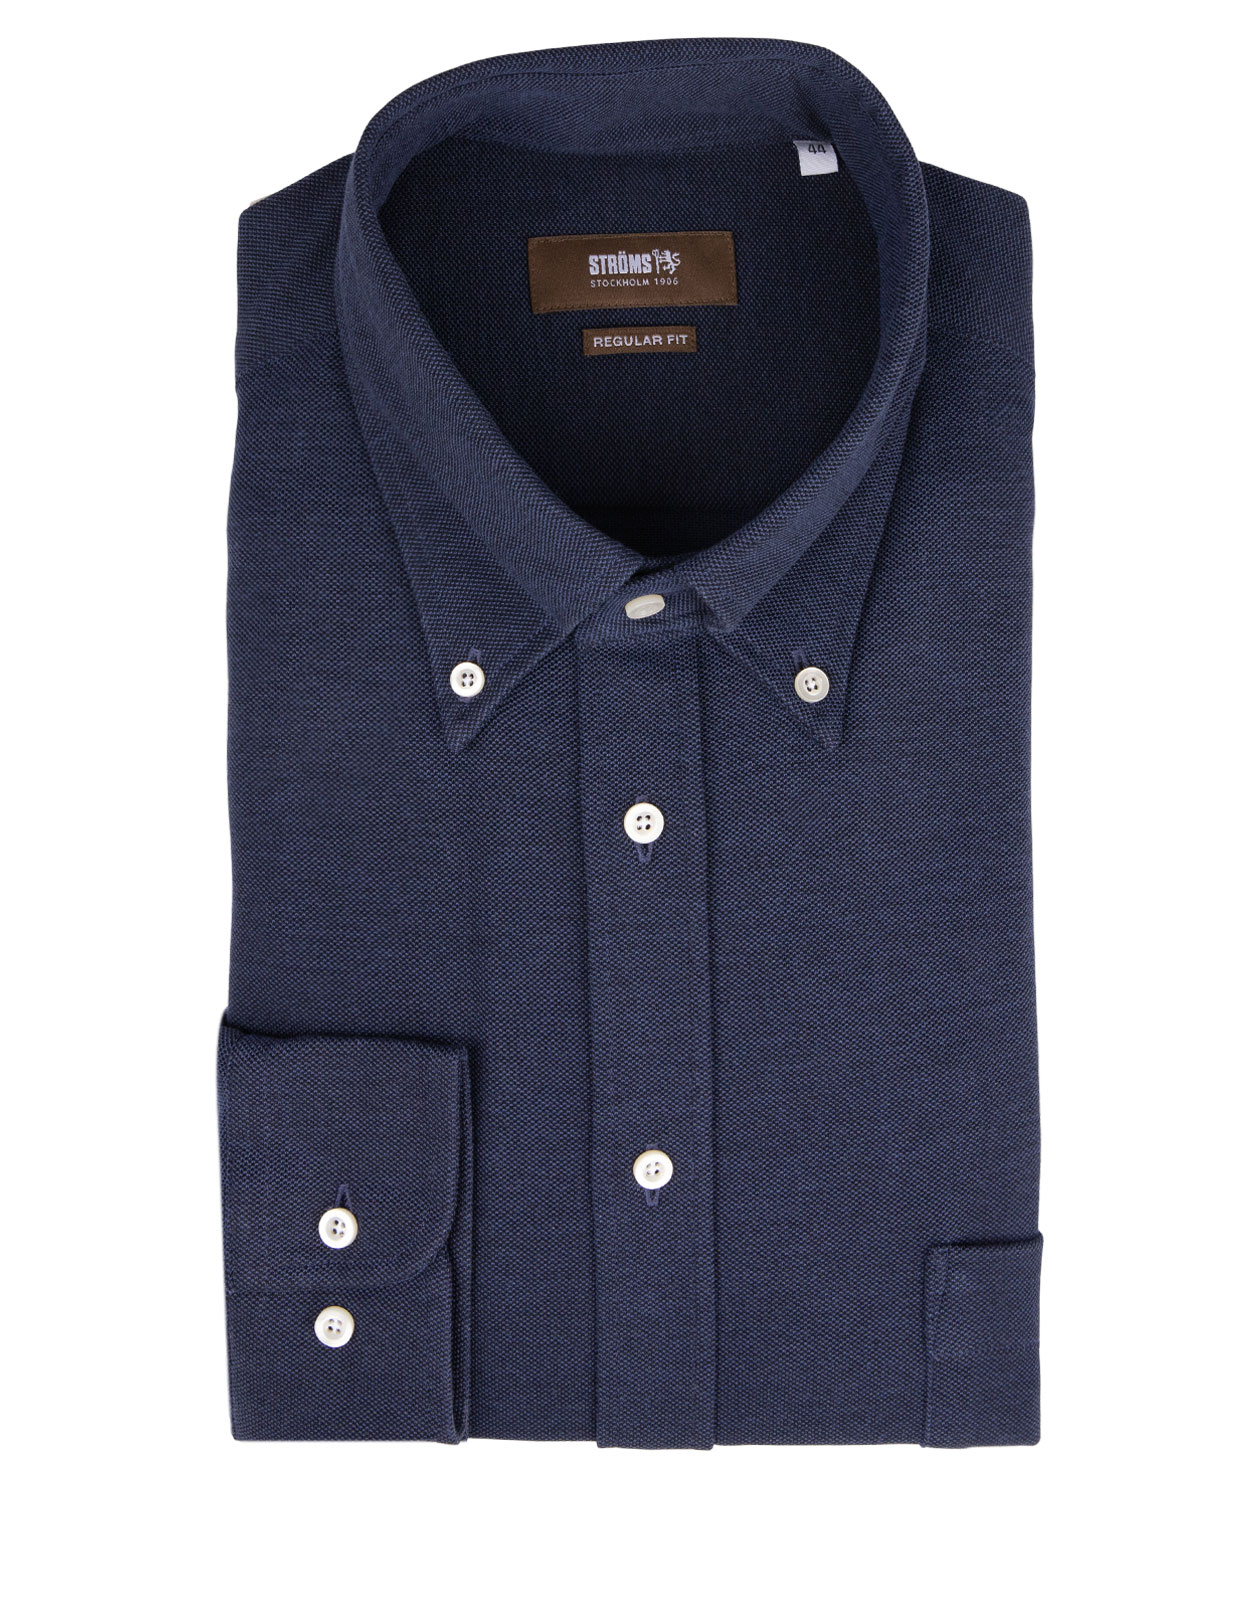 Regular Fit Button Down Jersey Shirt Navy